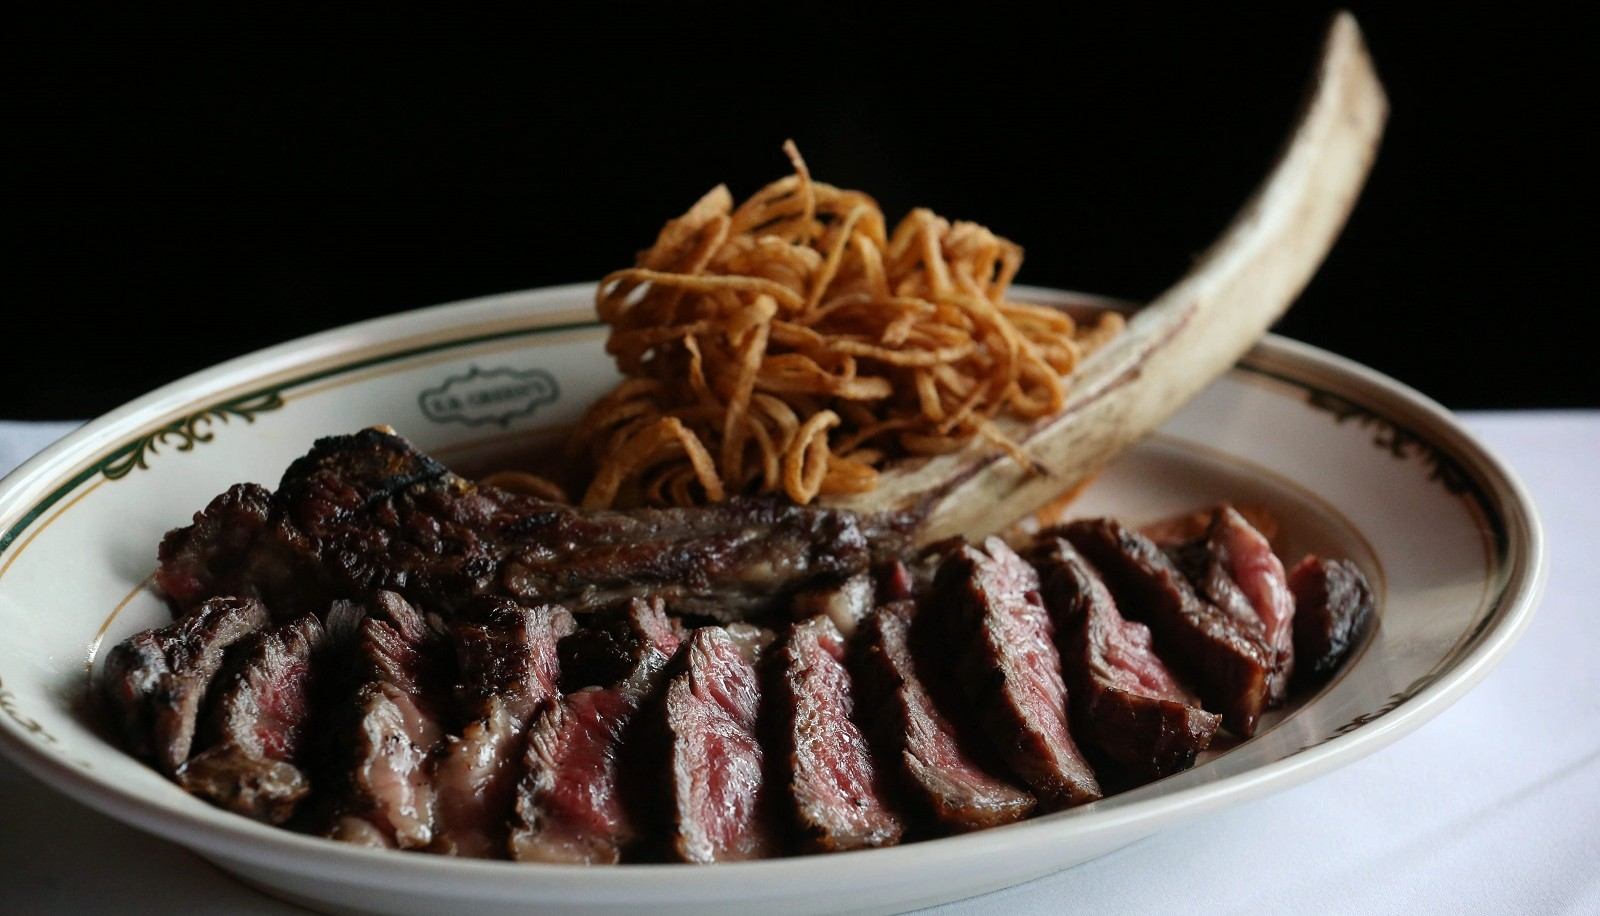 E.B. Green's Steakhouse's 30-ounce prime tomahawk ribeye comes with tobacco fried onions. (Sharon Cantillon/Buffalo News file photo)